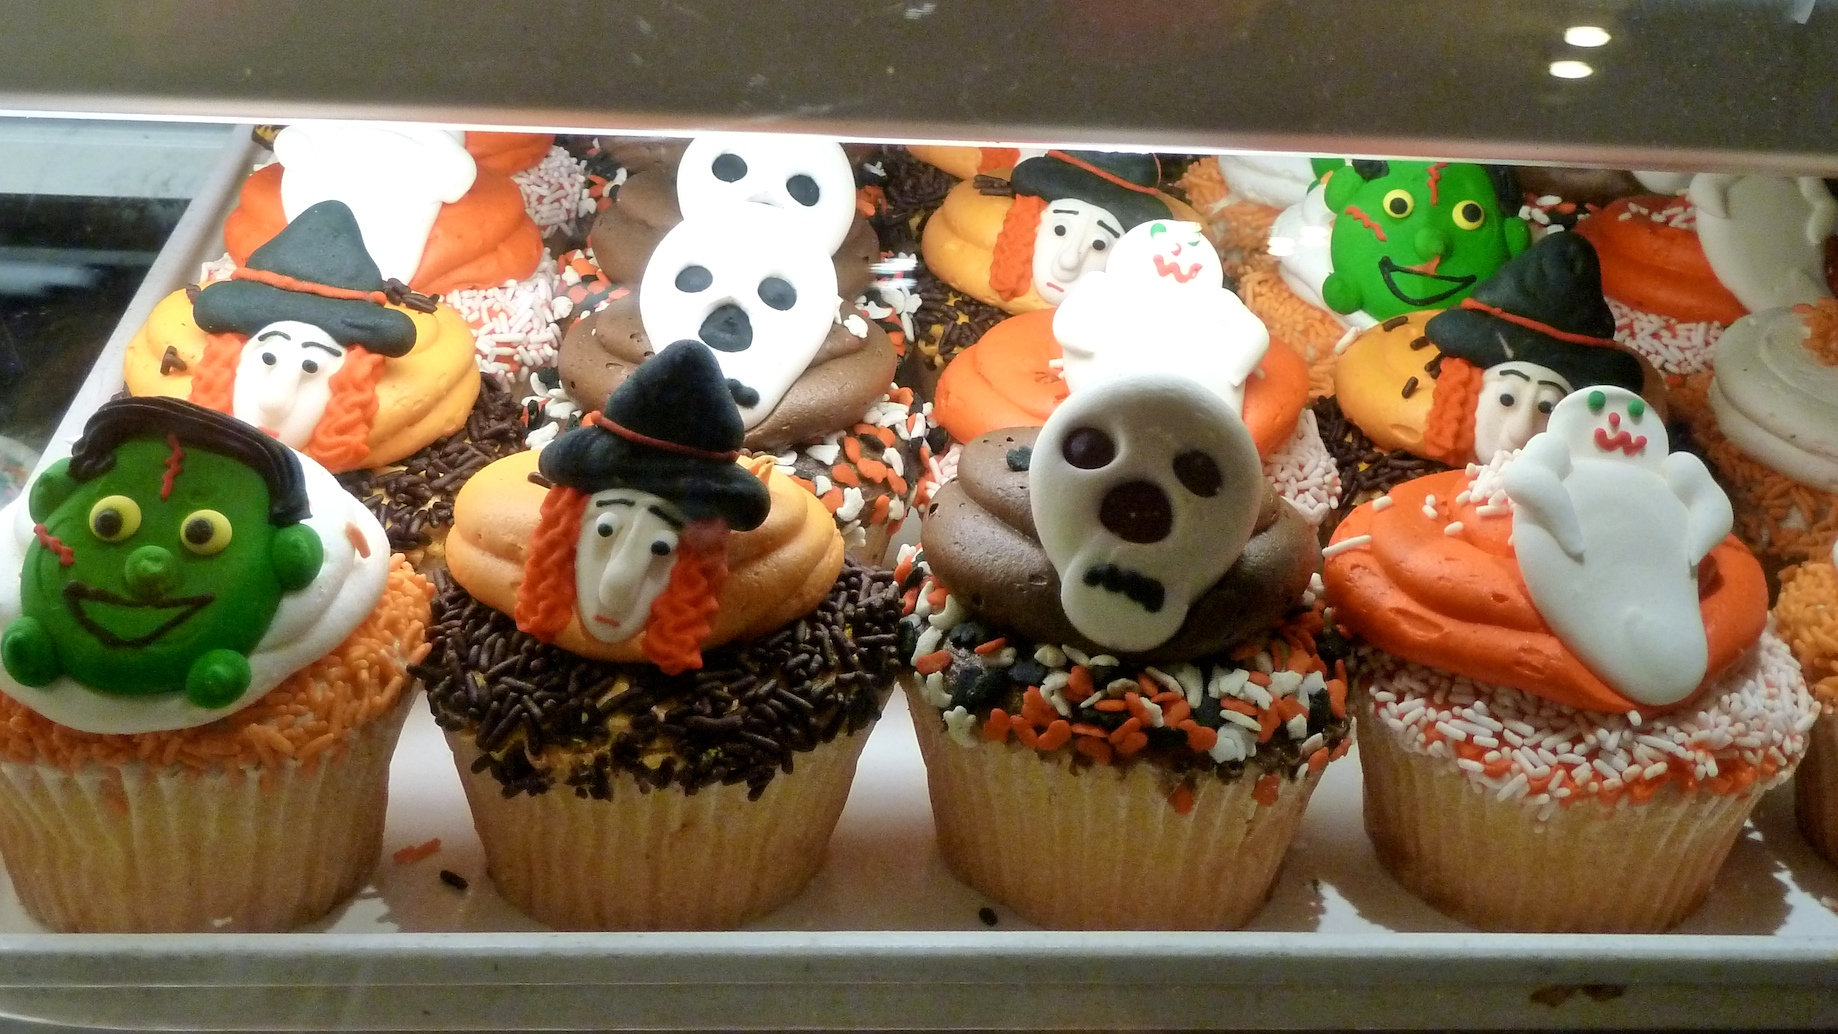 Halloween cupcakes in New York, could be fatal if you eat too many!